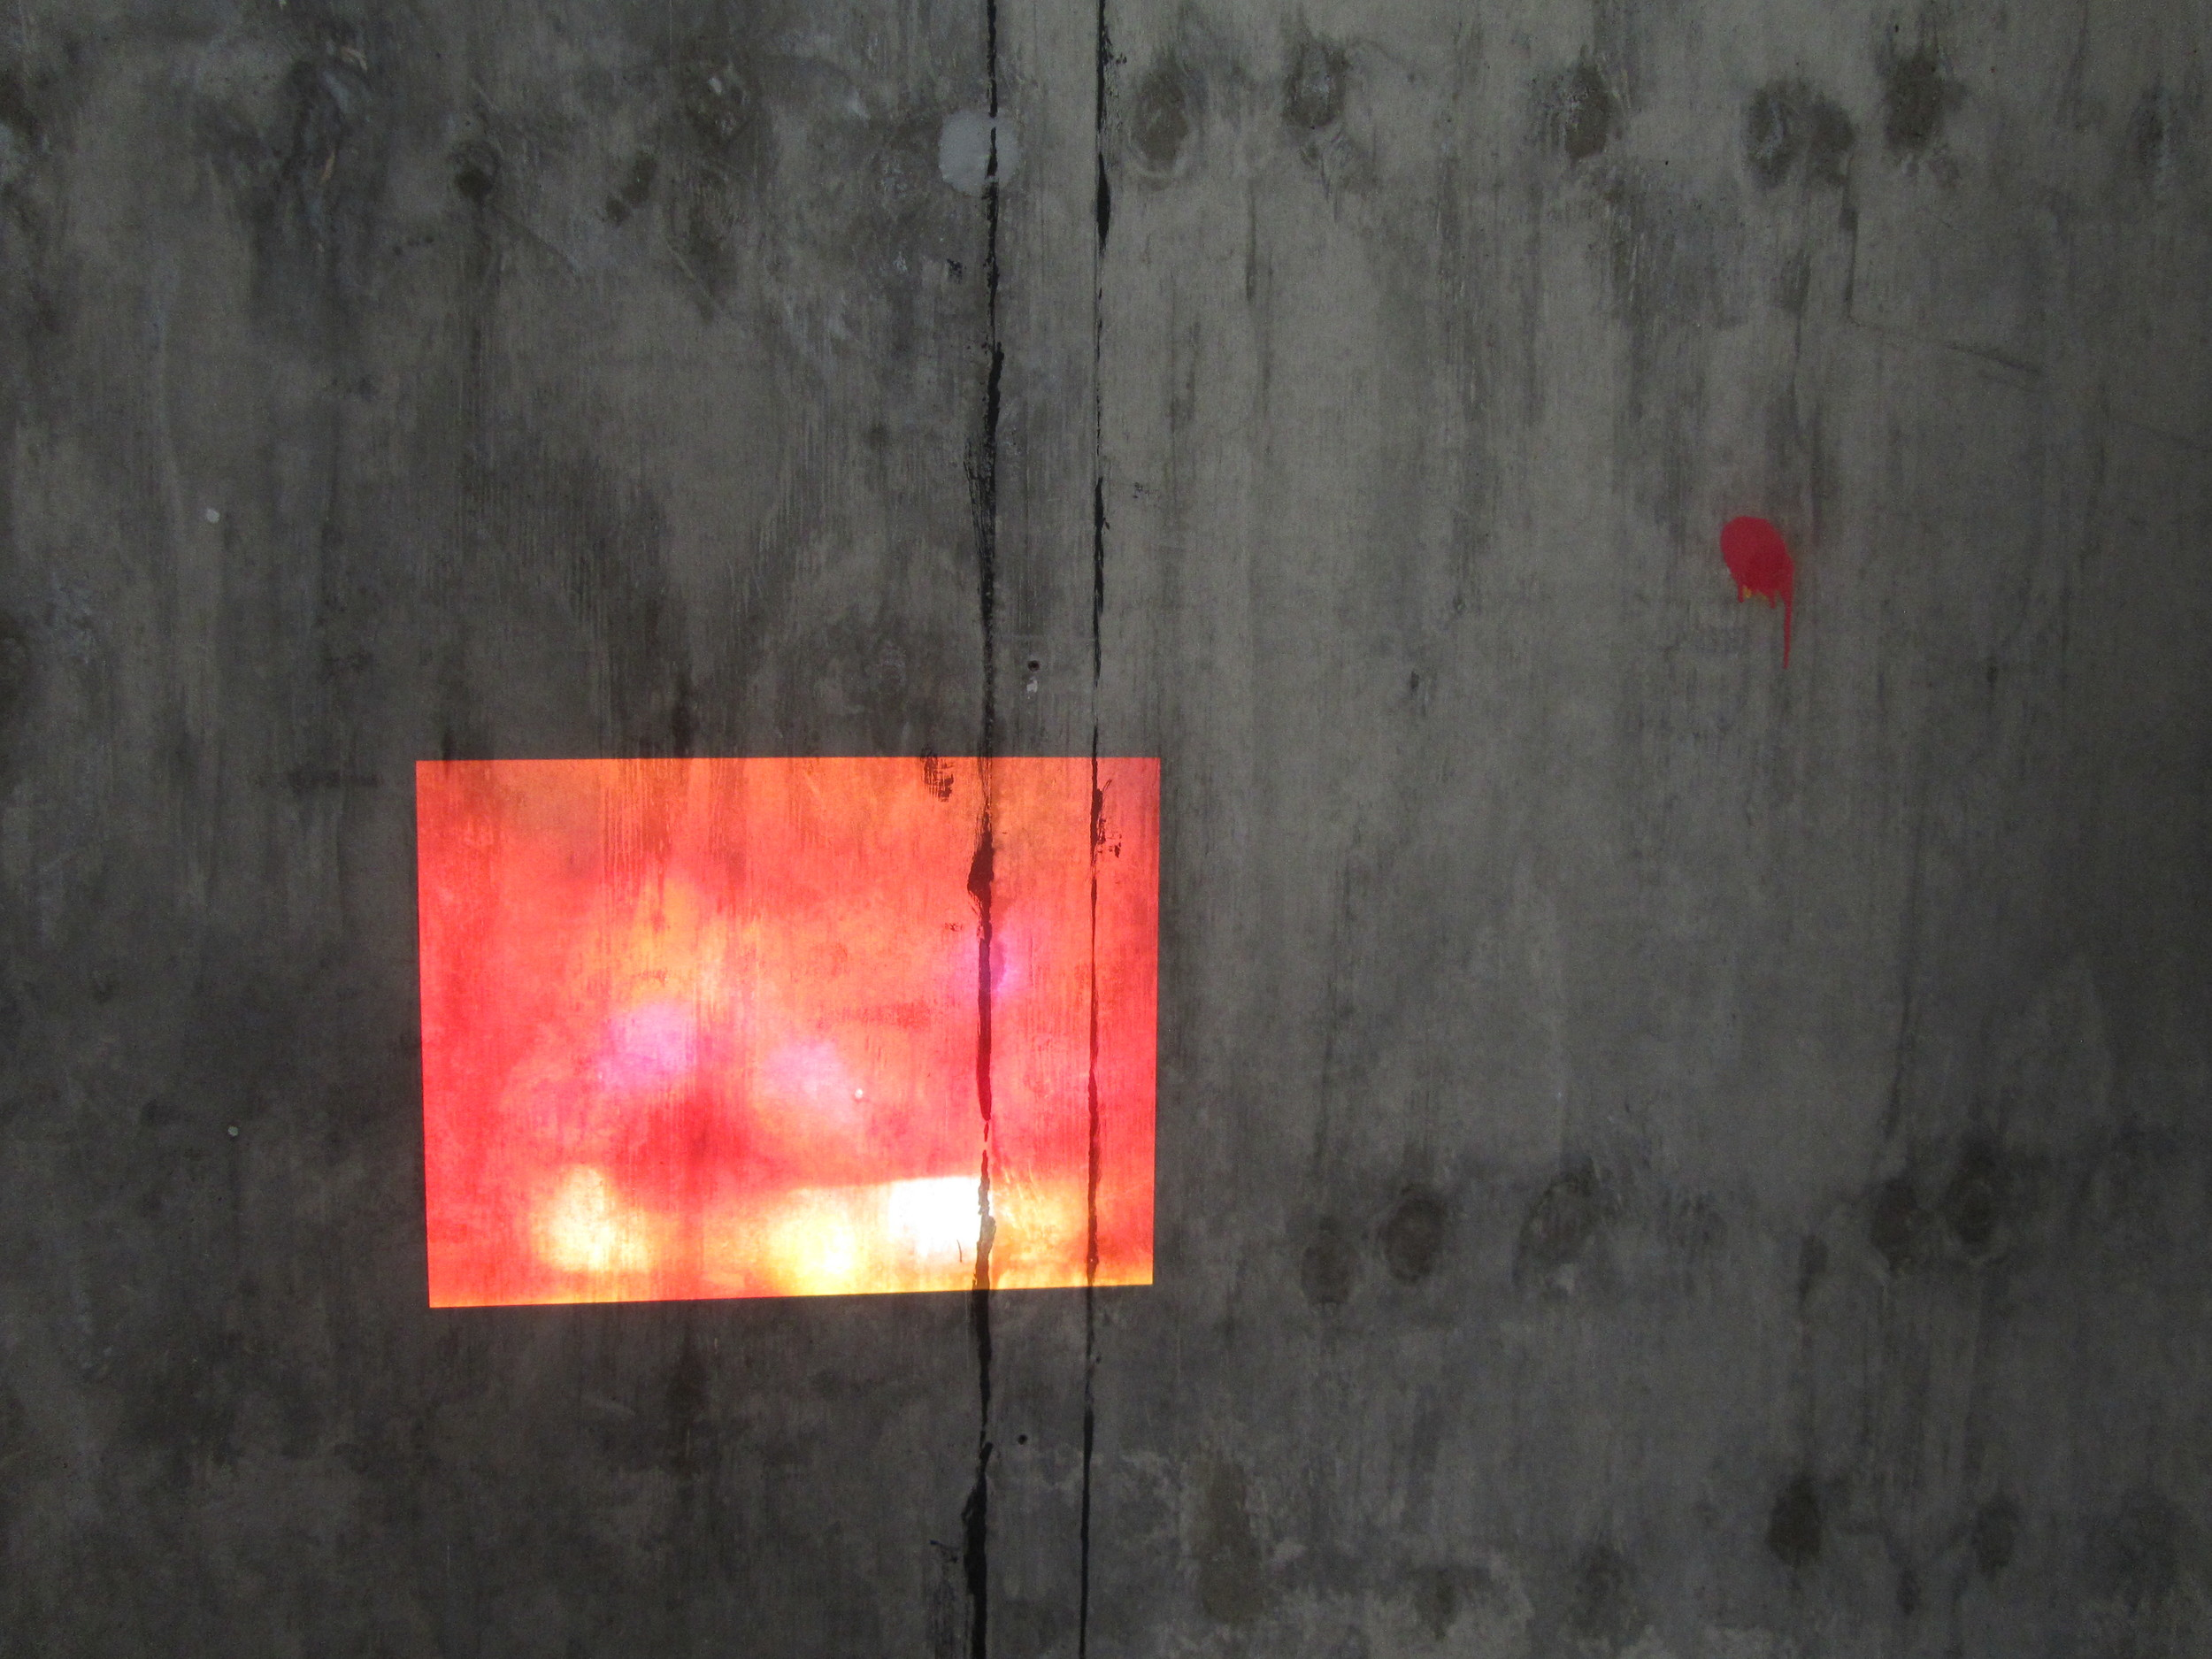 Holly Rowan Hesson's  Riot  2014 Projects directly onto the bare grey walls.